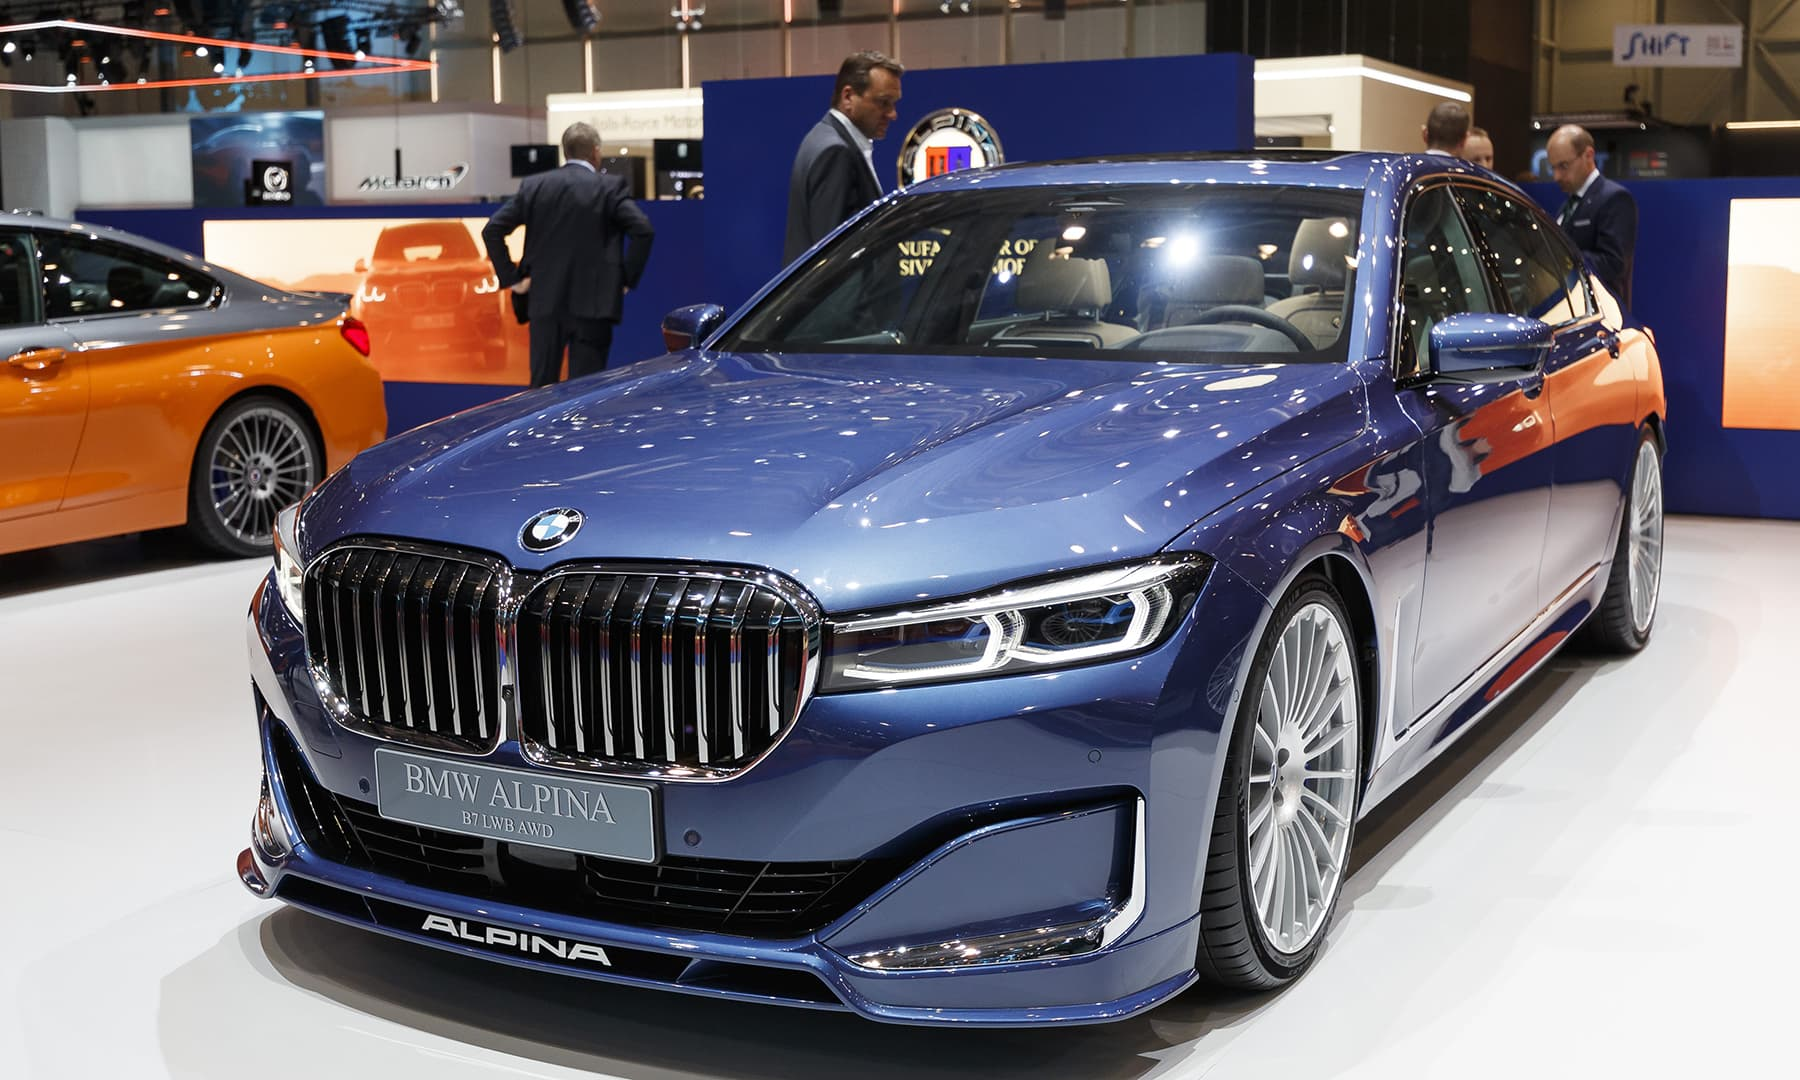 The BMW Alpina B7 is presented during the press day at the Geneva motor show. — AP